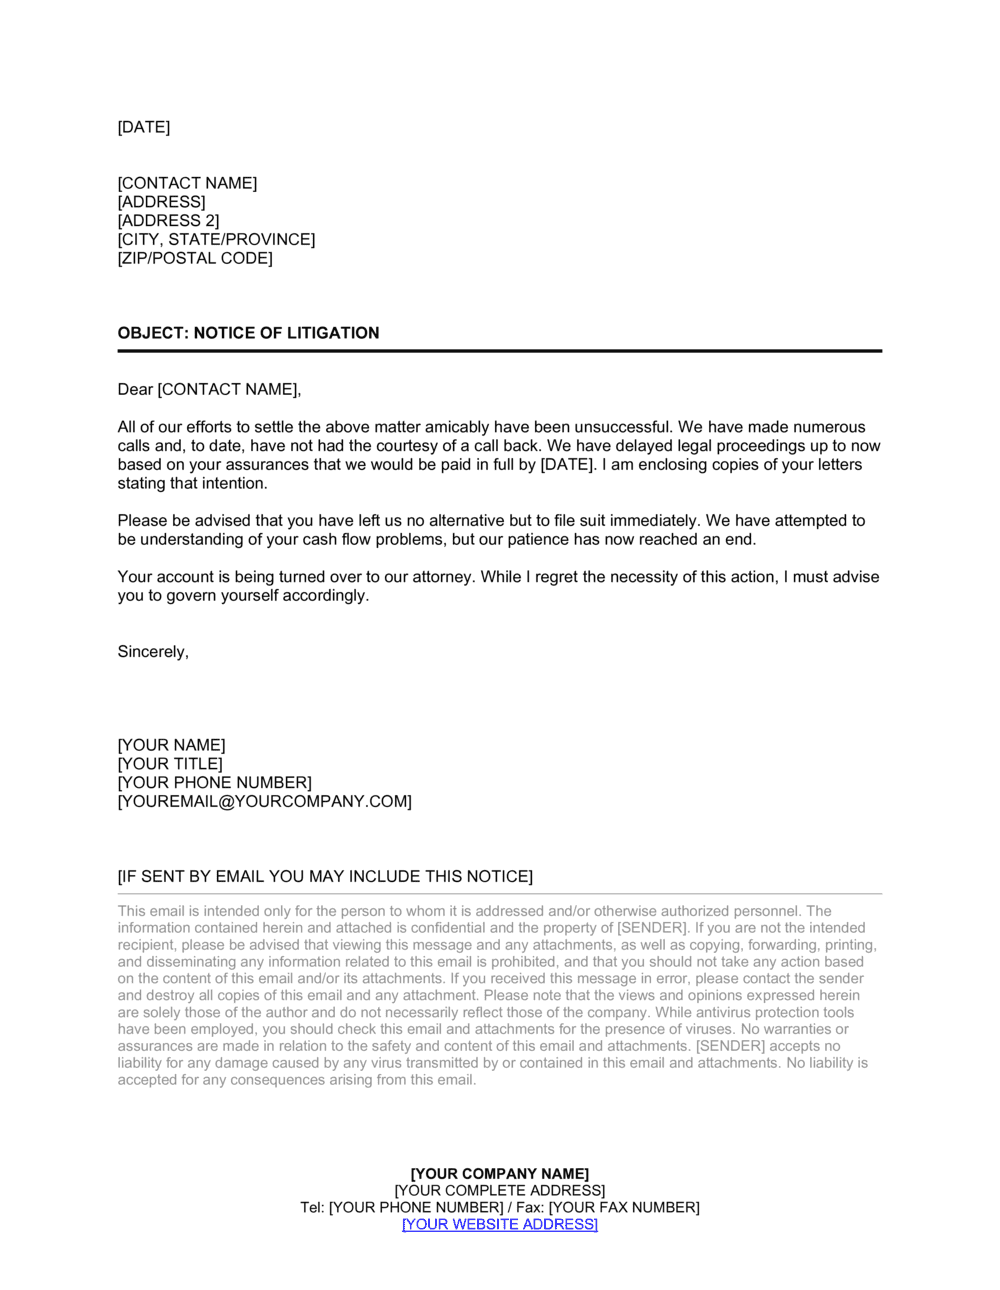 Business-in-a-Box's Letter Notice of Litigation Template